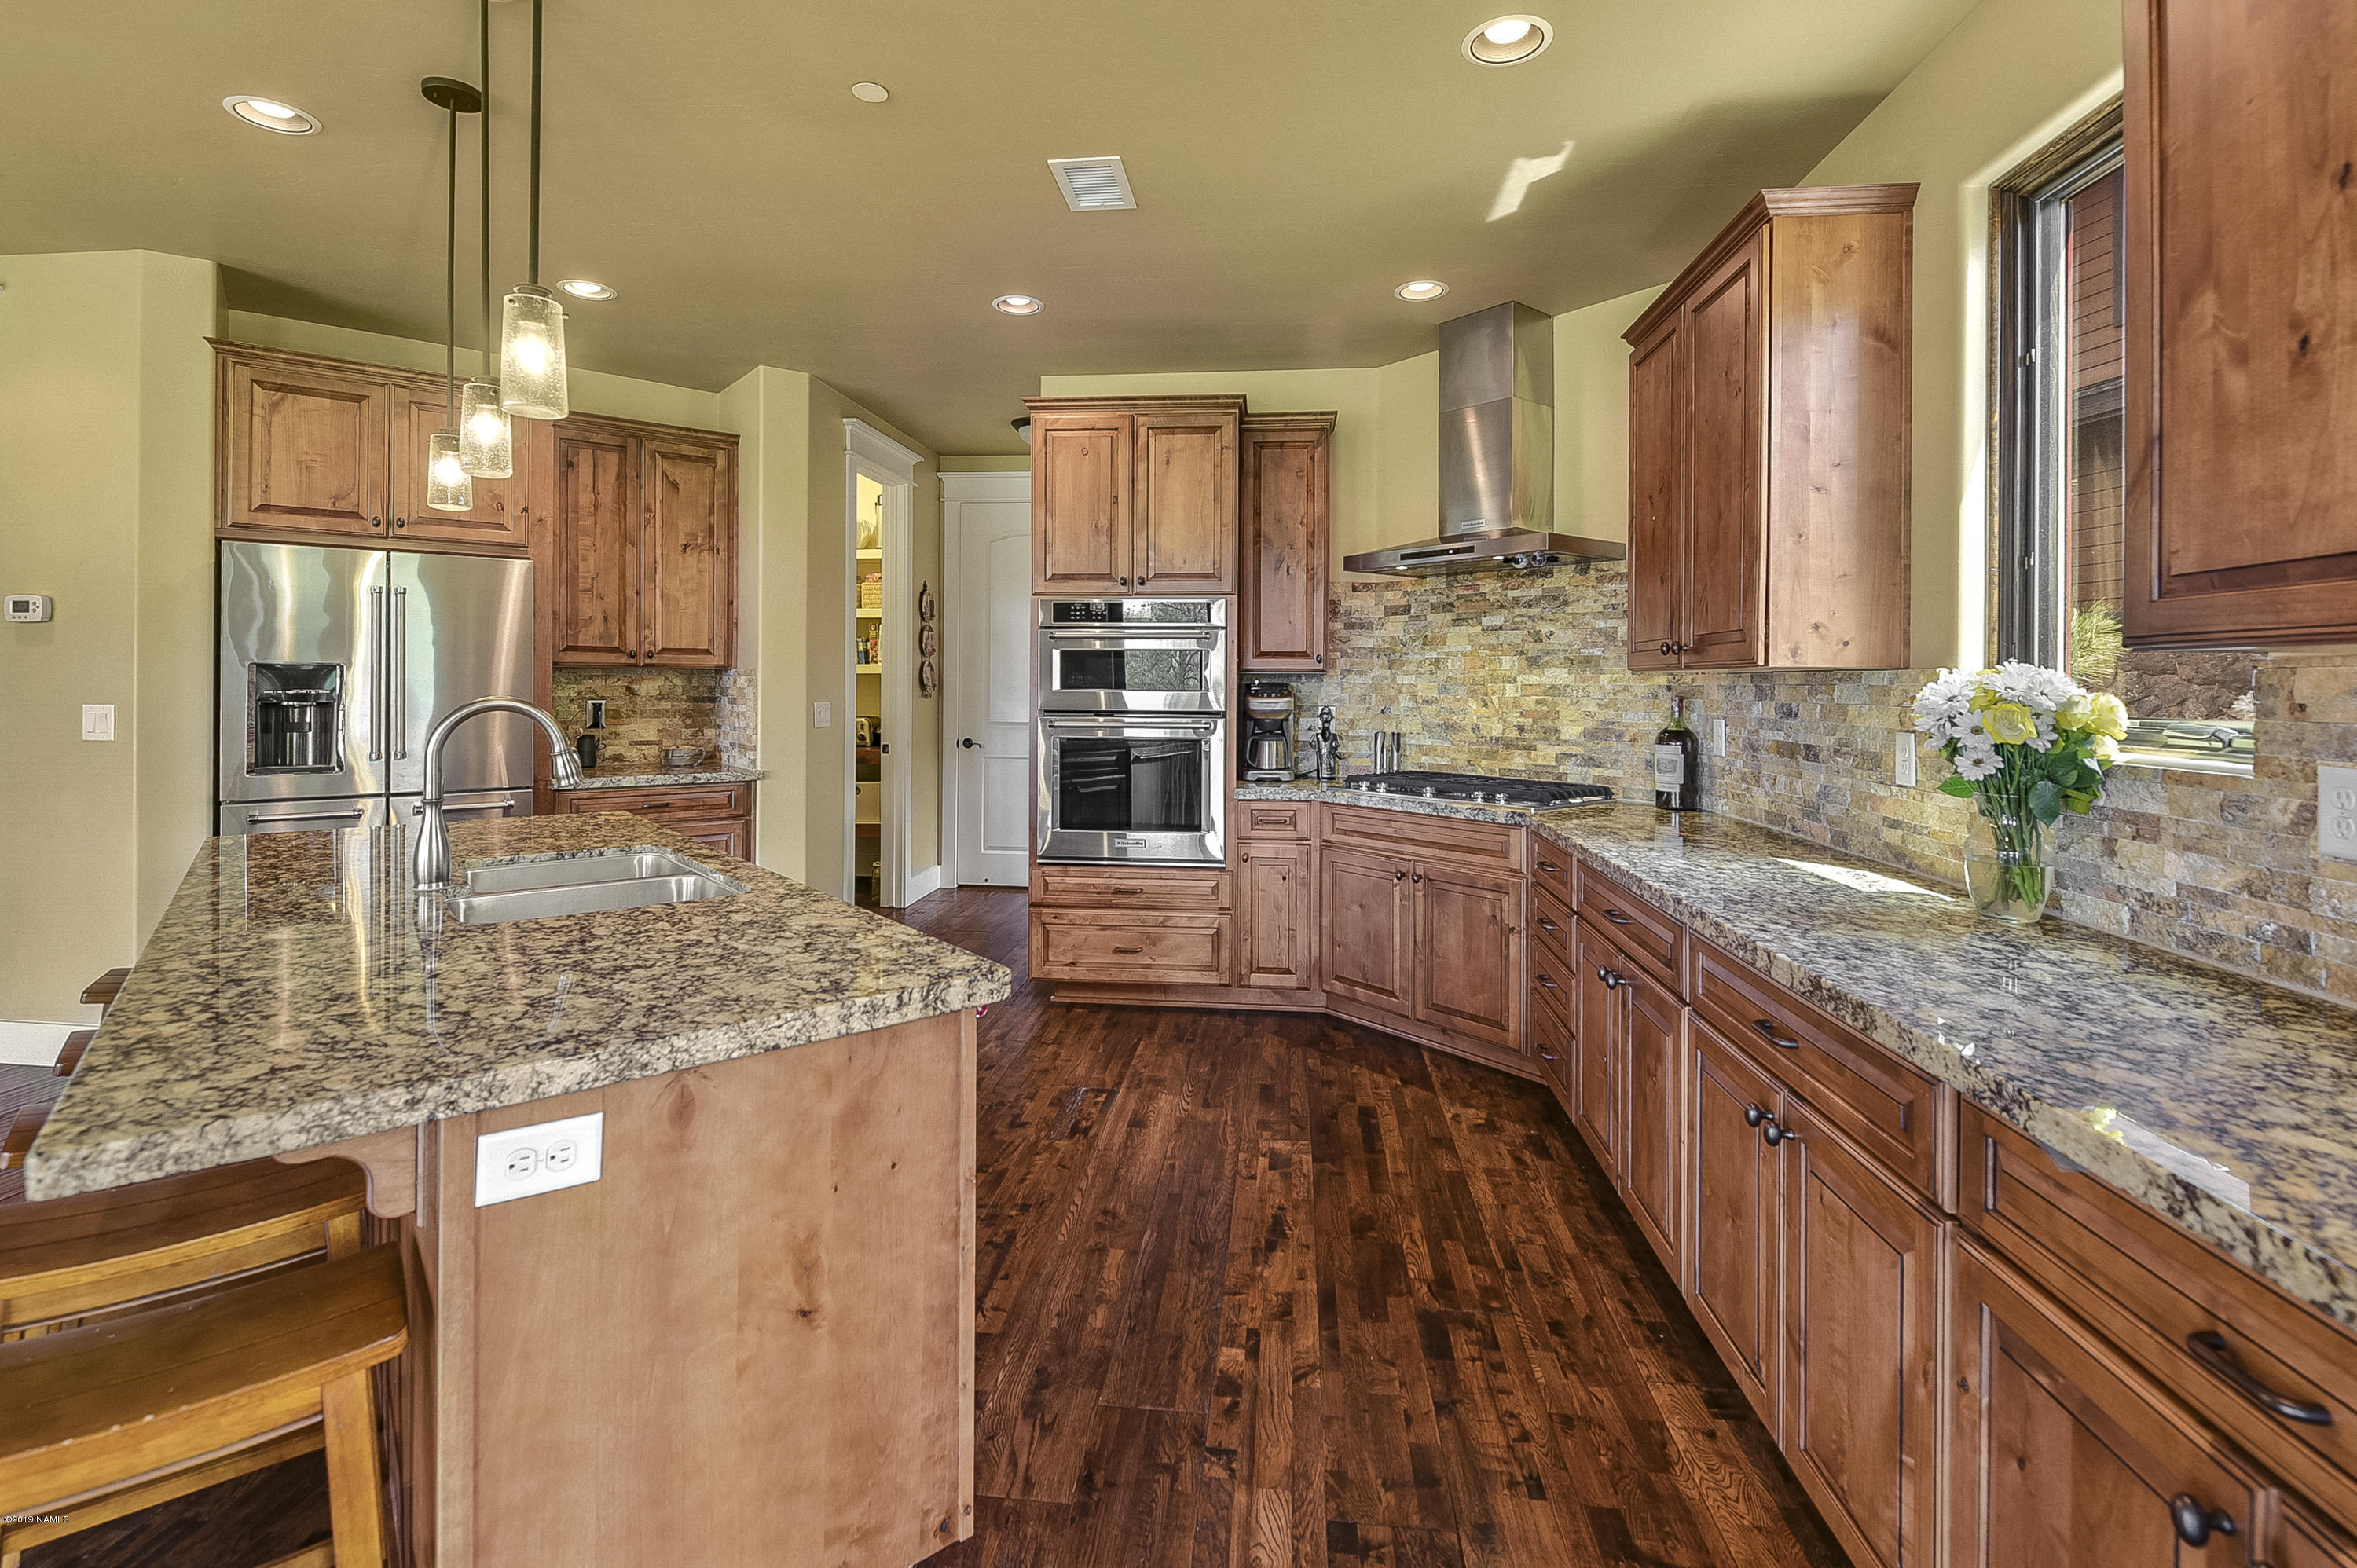 4165 Pack Saddle, Flagstaff, 86005, MLS # 177565 | Better Homes and Gardens  BloomTree Realty